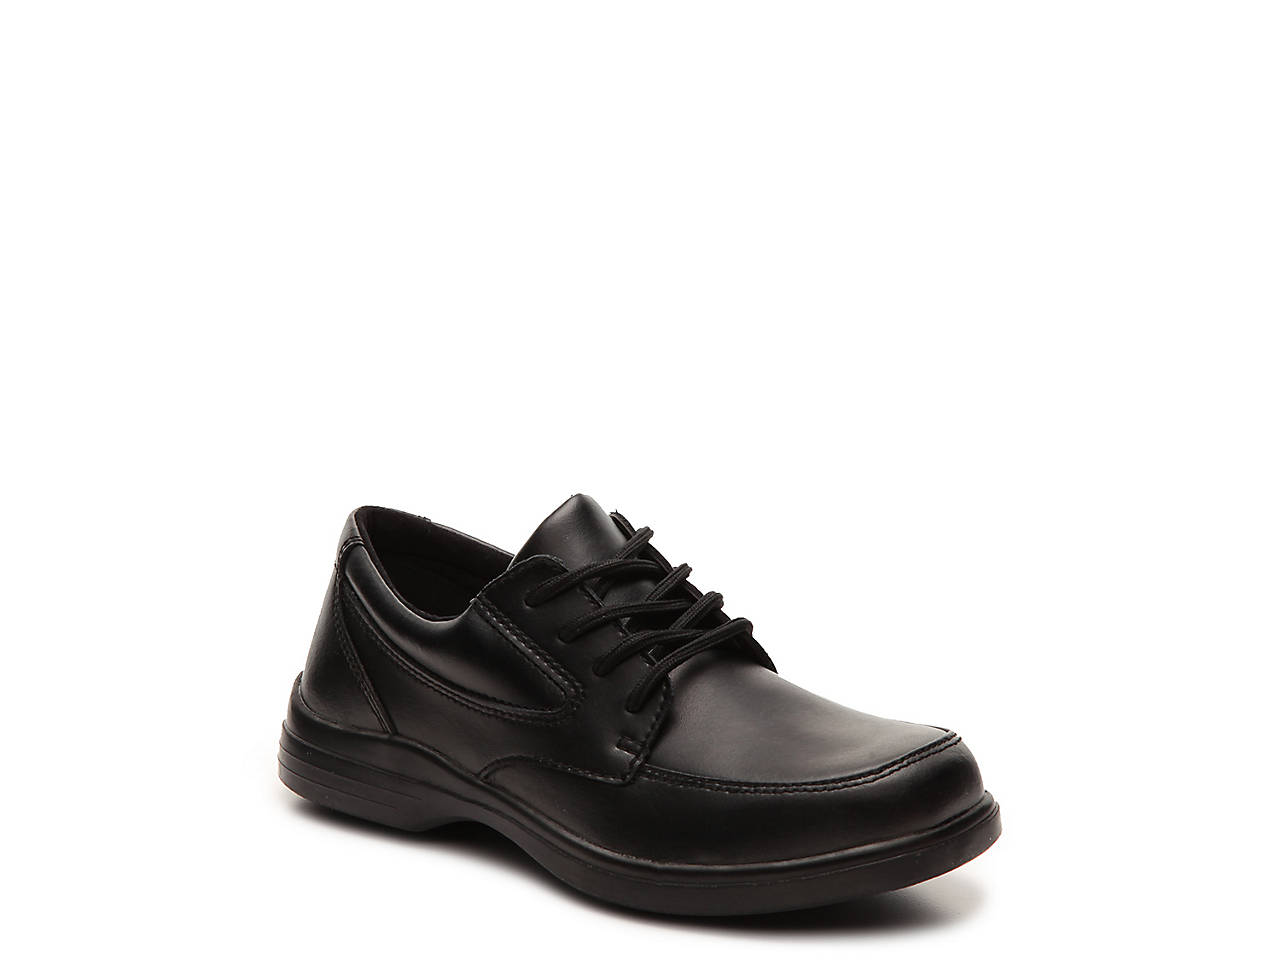 13eac022d Hush Puppies Ty Youth Oxford Kids Shoes